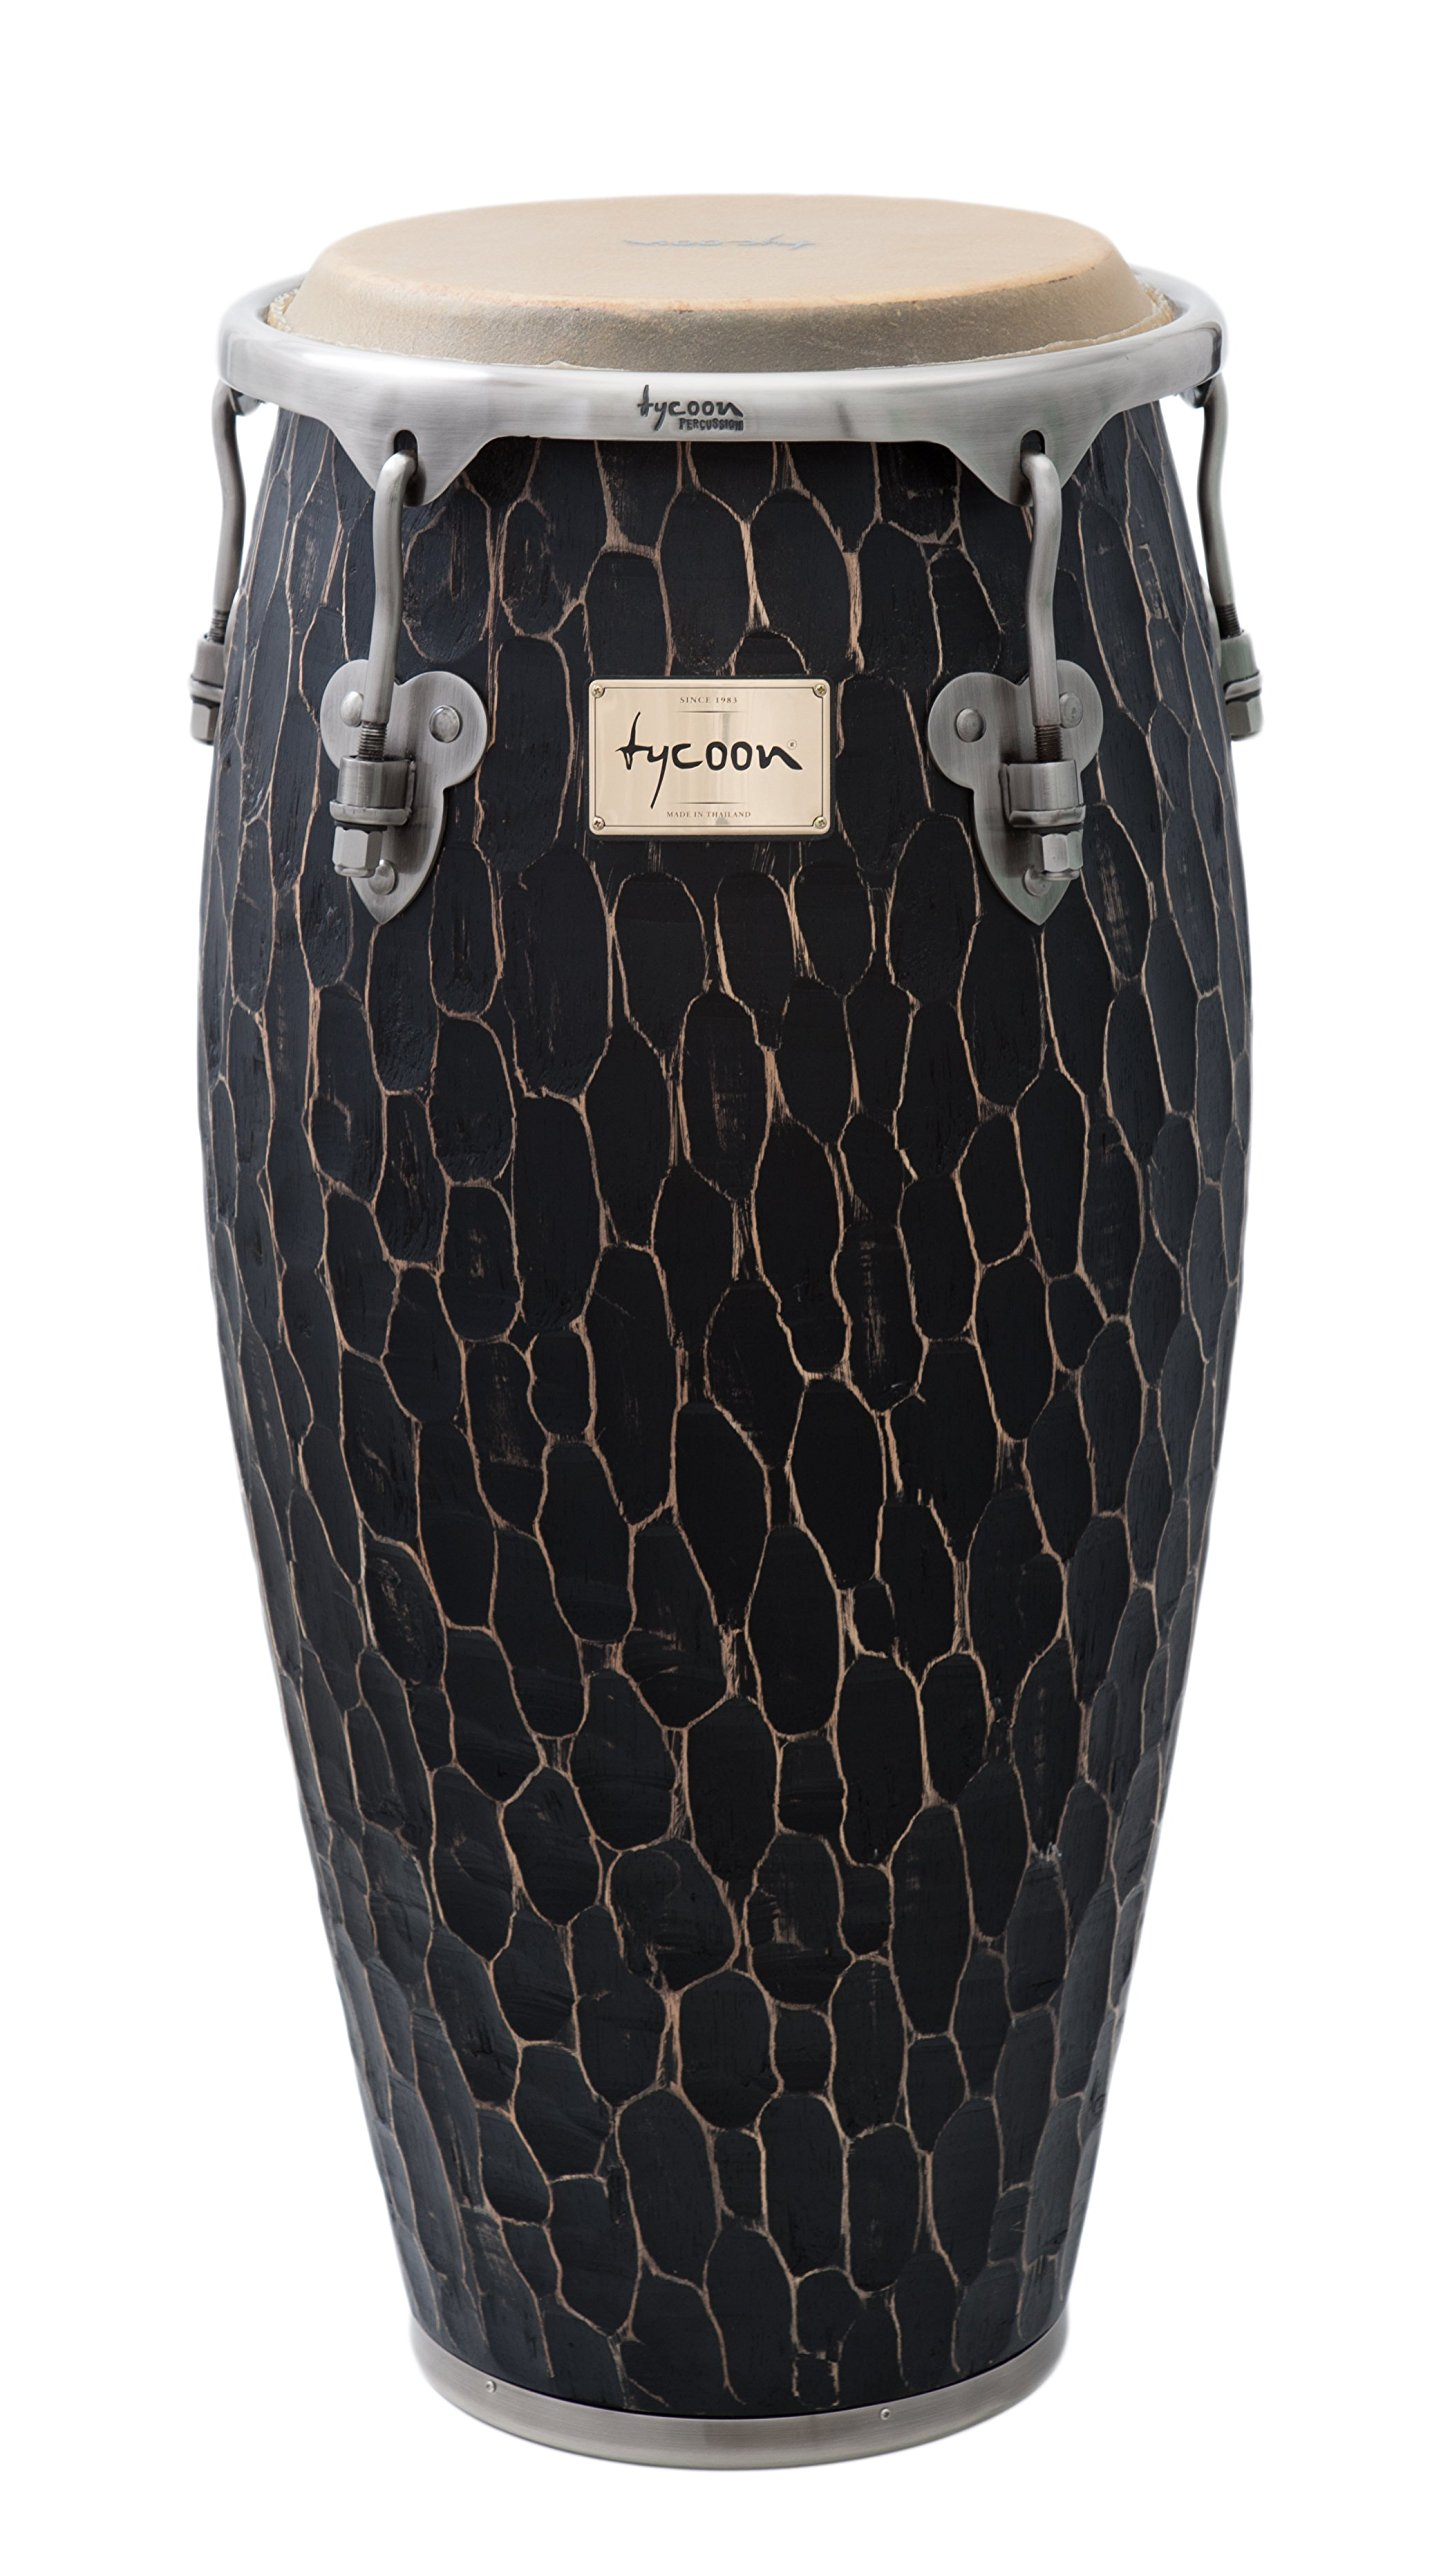 Tycoon Percussion 12 1/2 Inch Master Hand Crafted Original Series Tumba With Single Stand by Tycoon Percussion